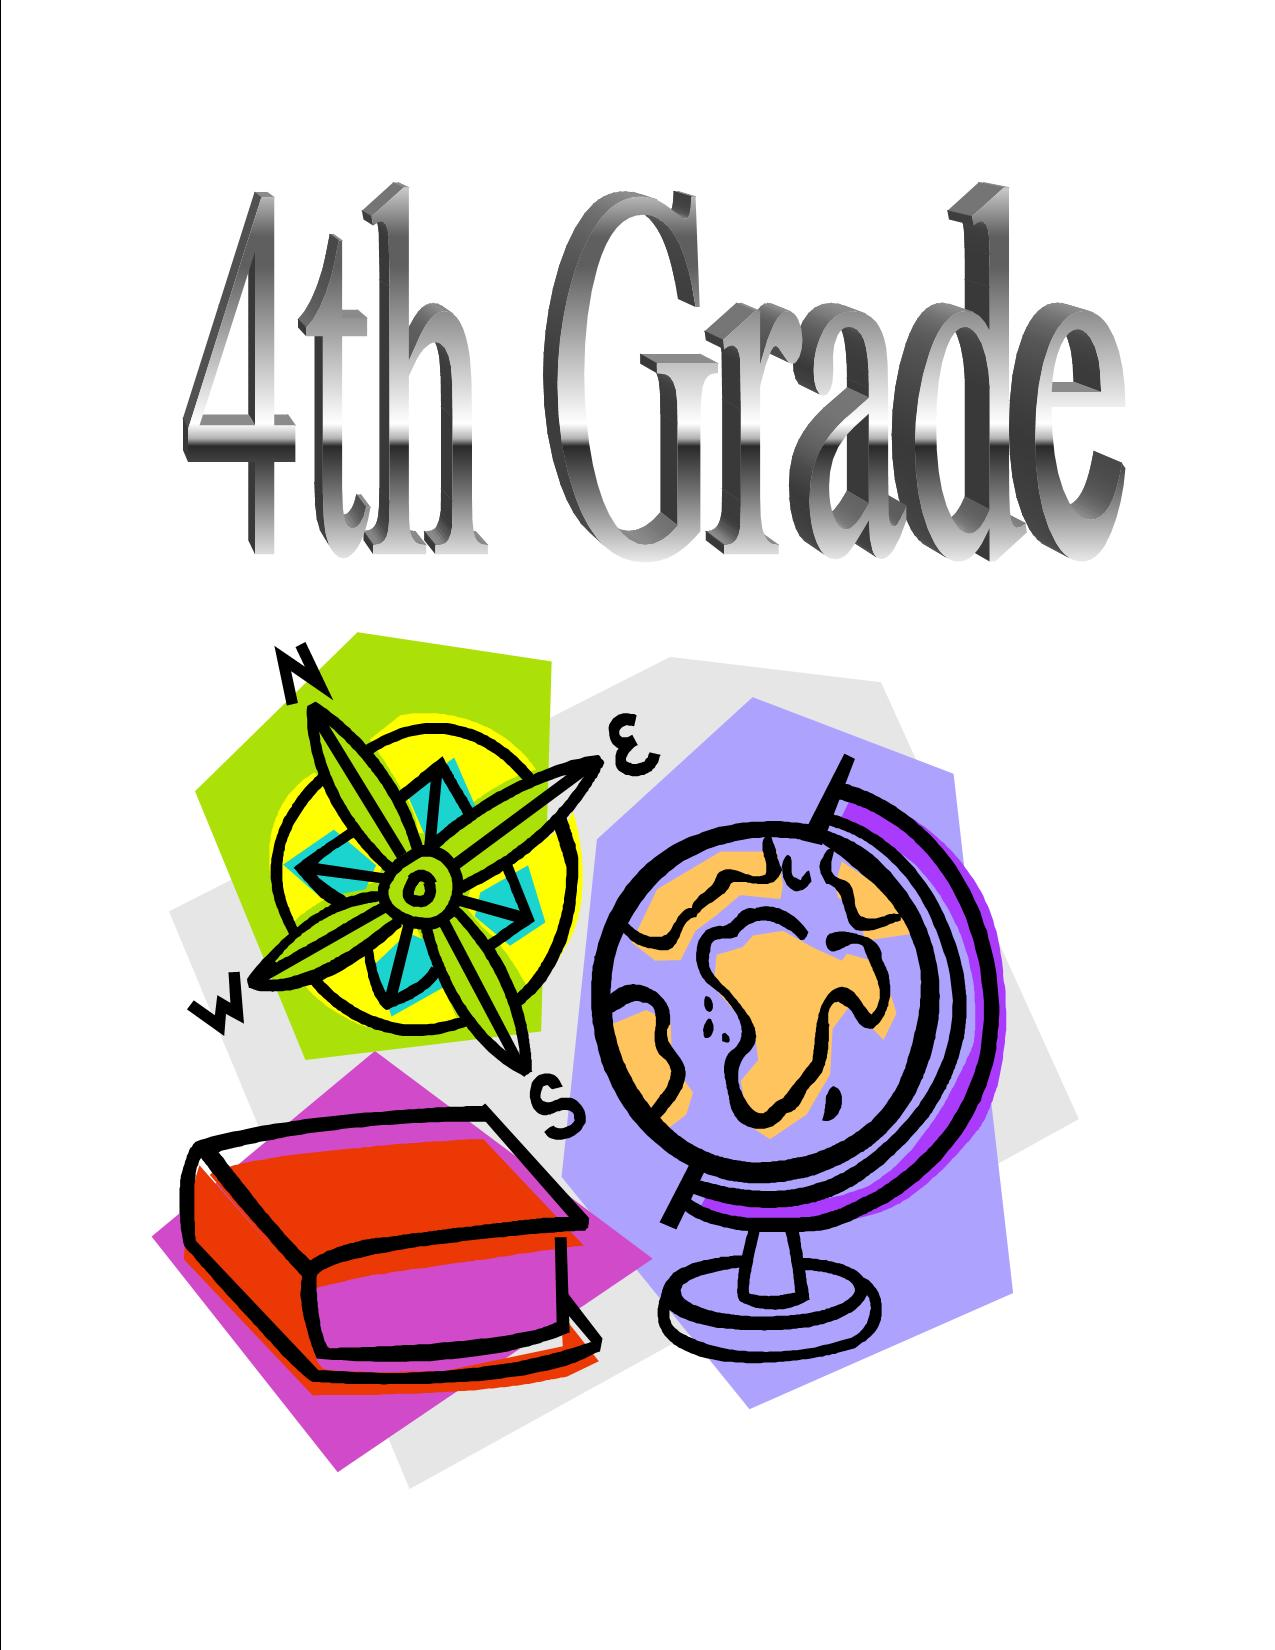 Worksheet 4rth Grade 4th grade clipart kid clipart